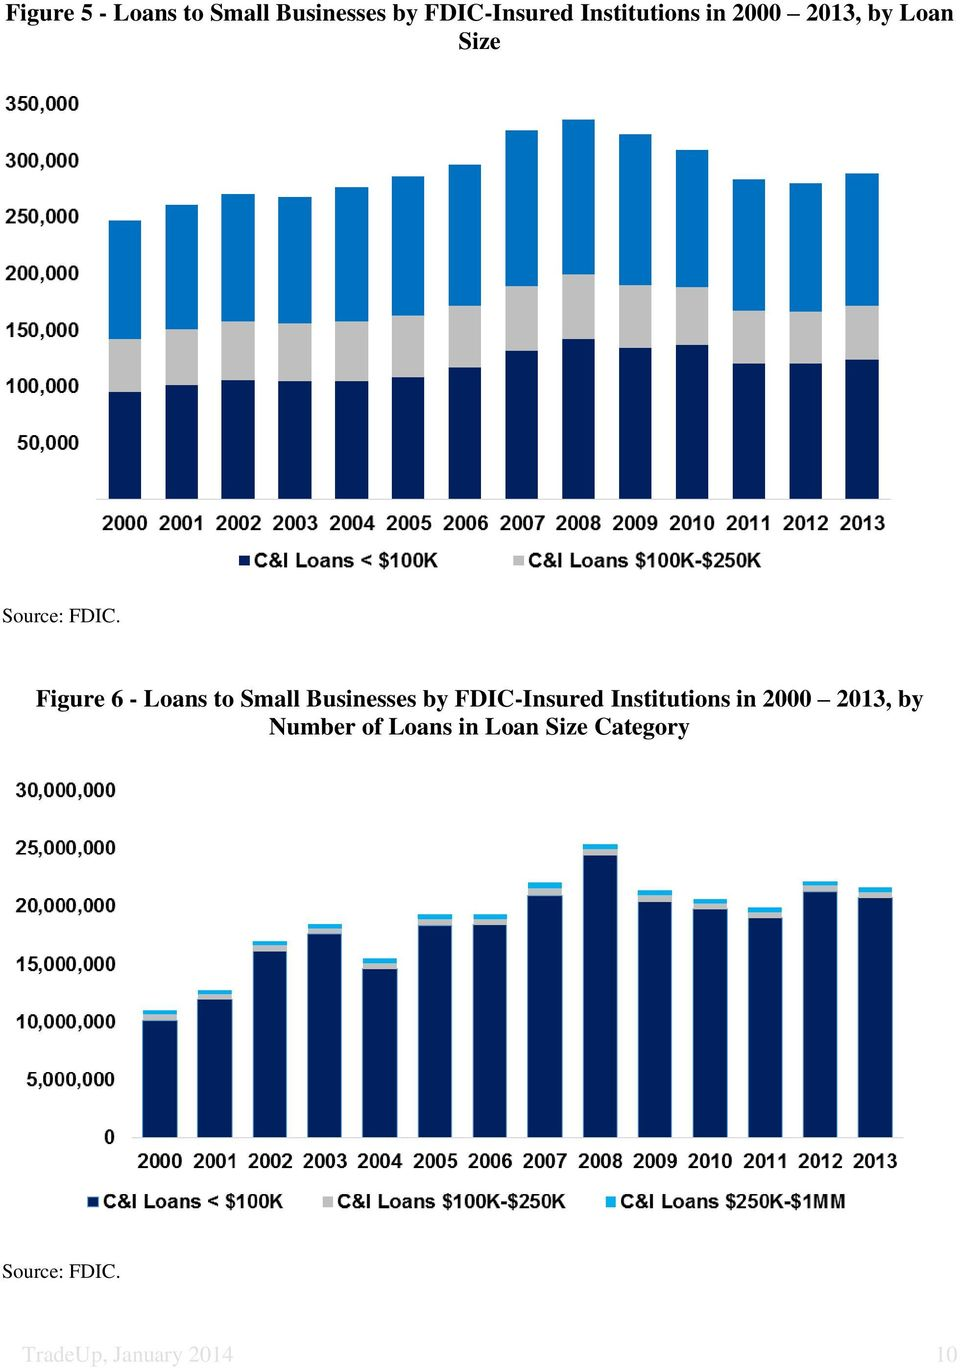 Figure 6 - Loans to Small Businesses by FDIC-Insured Institutions